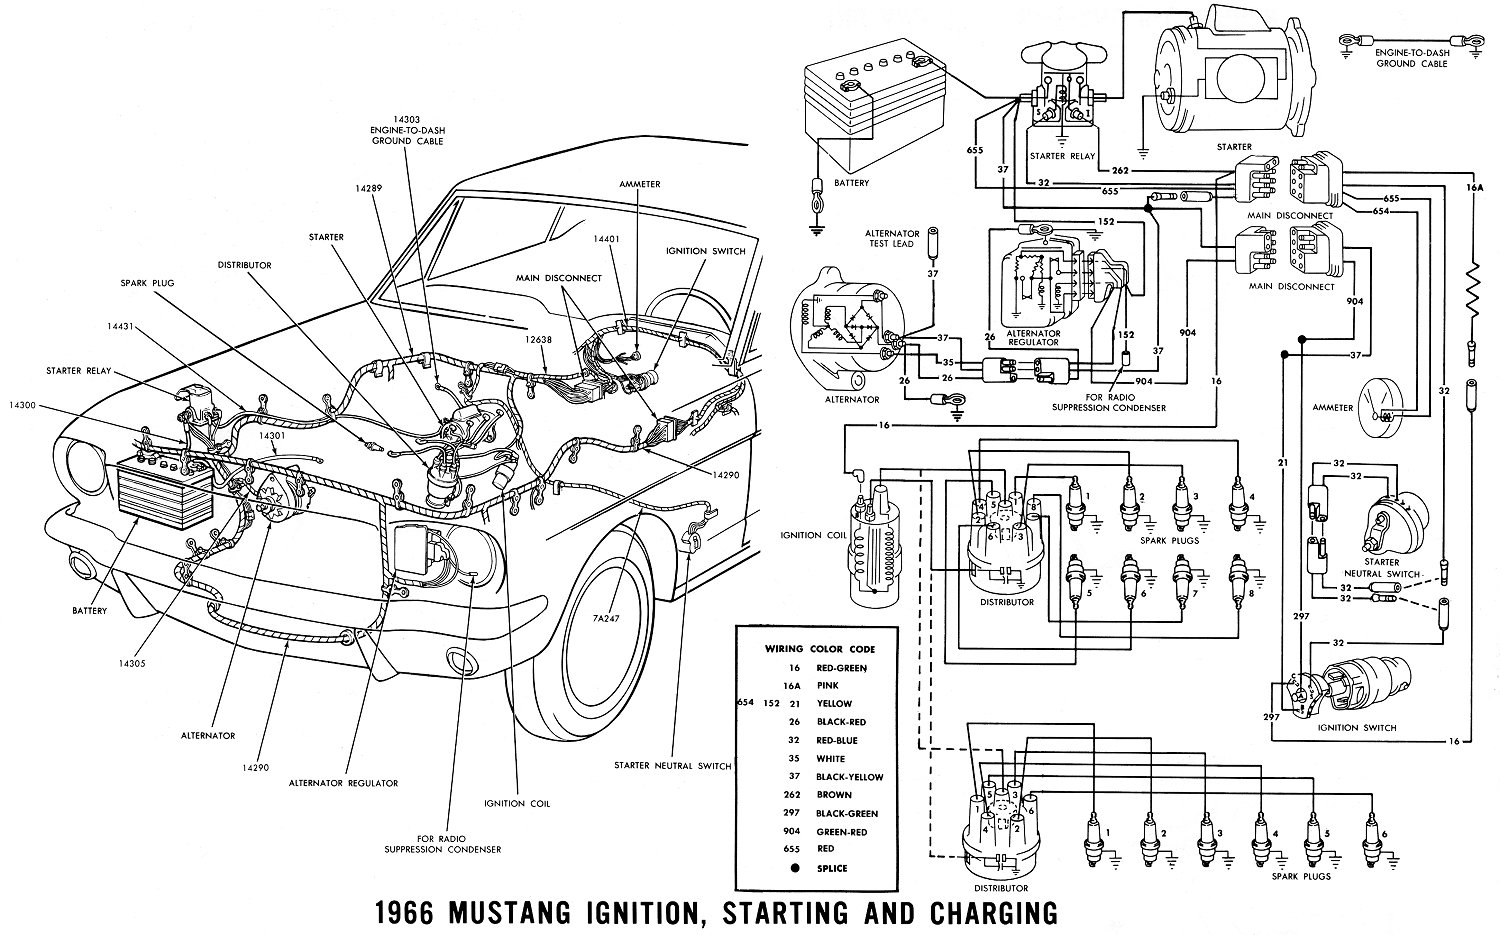 97 Lesabre Wiring Diagram together with Obd1 B Series Engine Into Obd2a Obd2b Civic Integra     1972711 in addition 12671 2 further Watch furthermore Subaru Legacy 2009 Fuse Box Diagram. on dodge power wagon wiring diagram